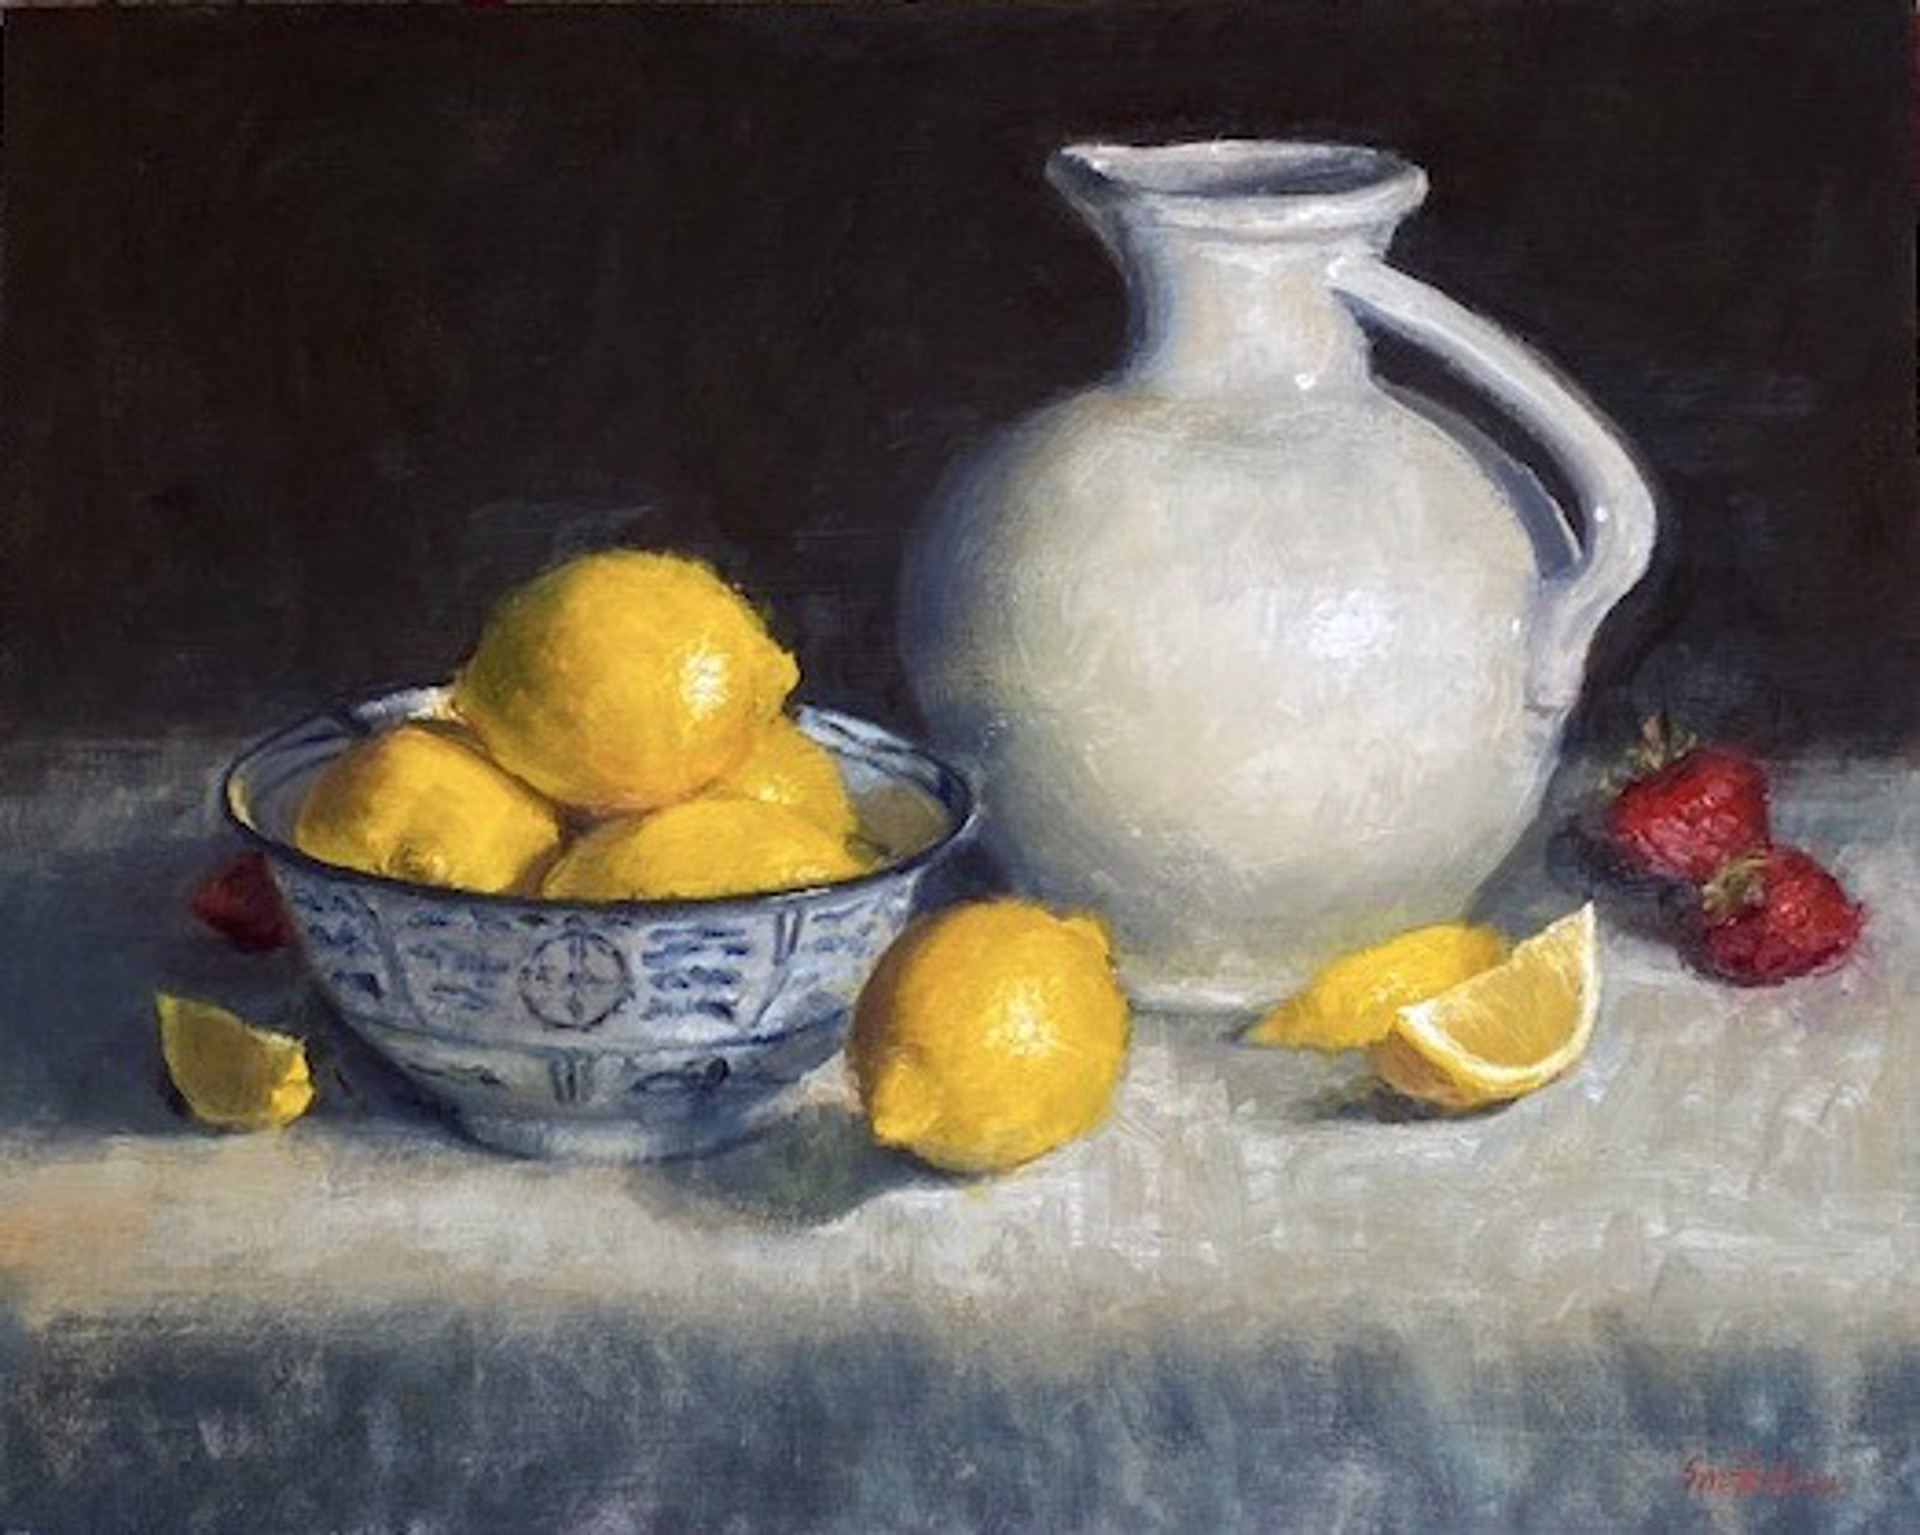 Still Life with Lemons by Sue Foell, opa